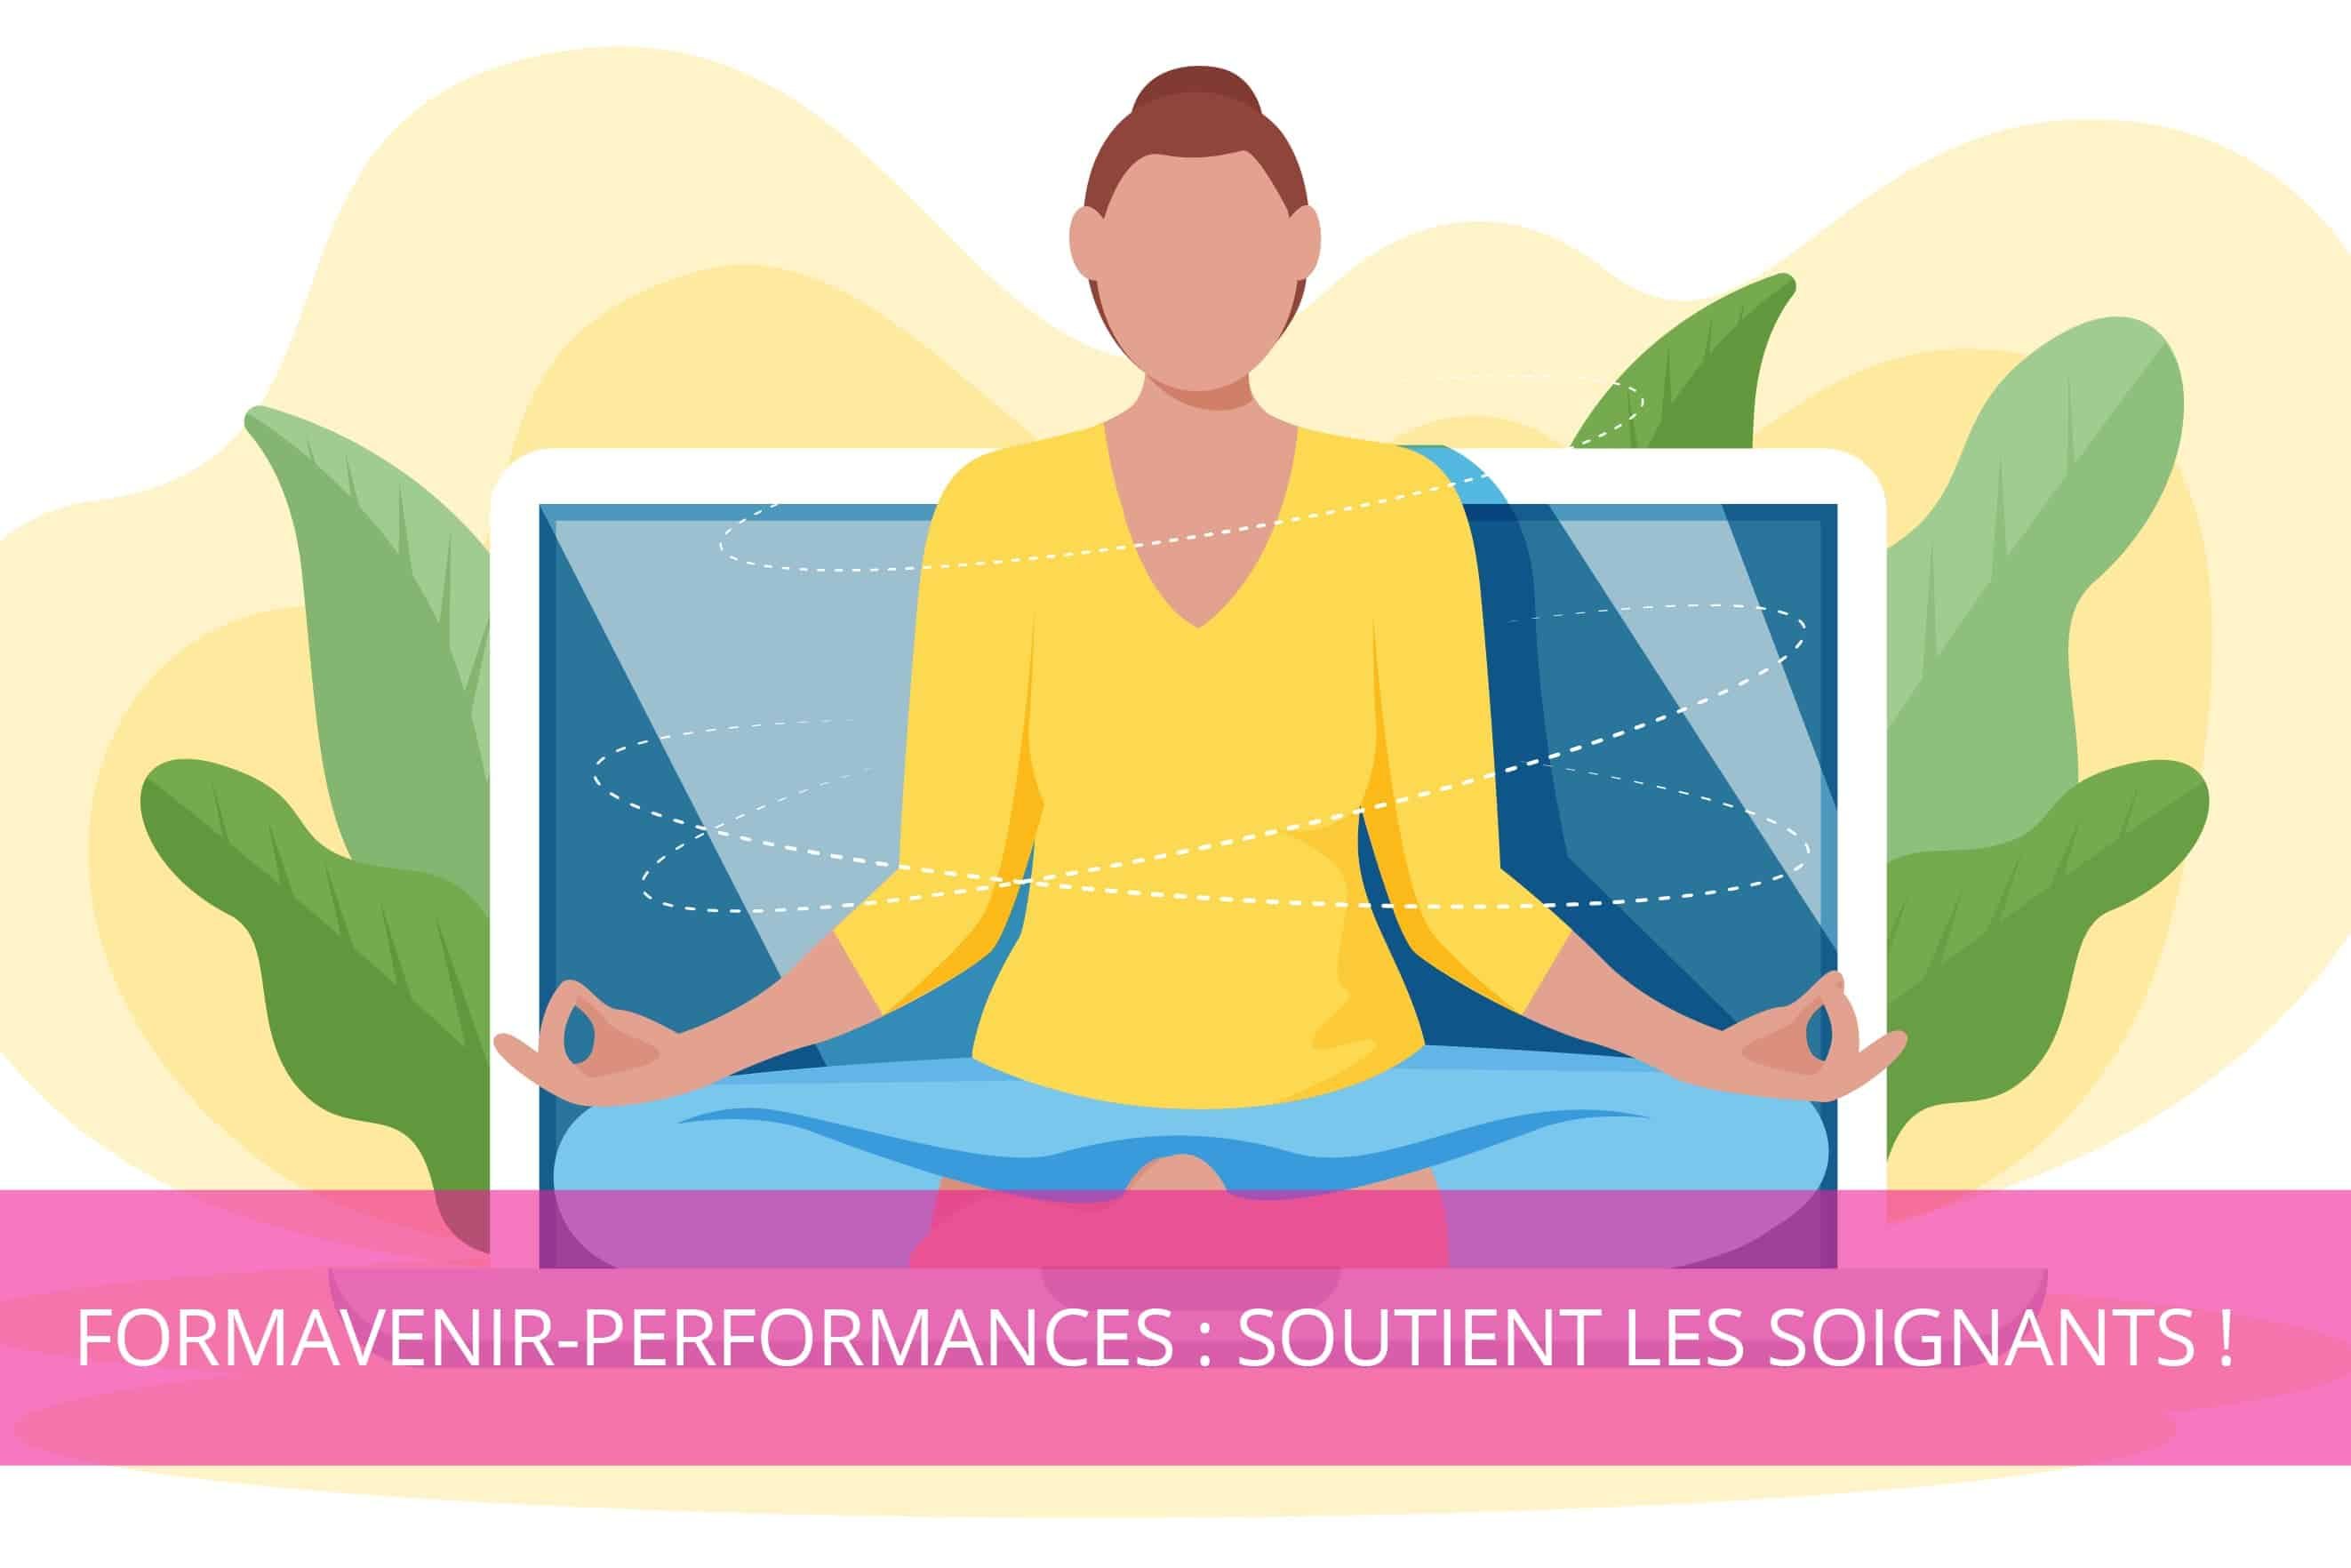 Formavenir-Performances : soutient les soignants !